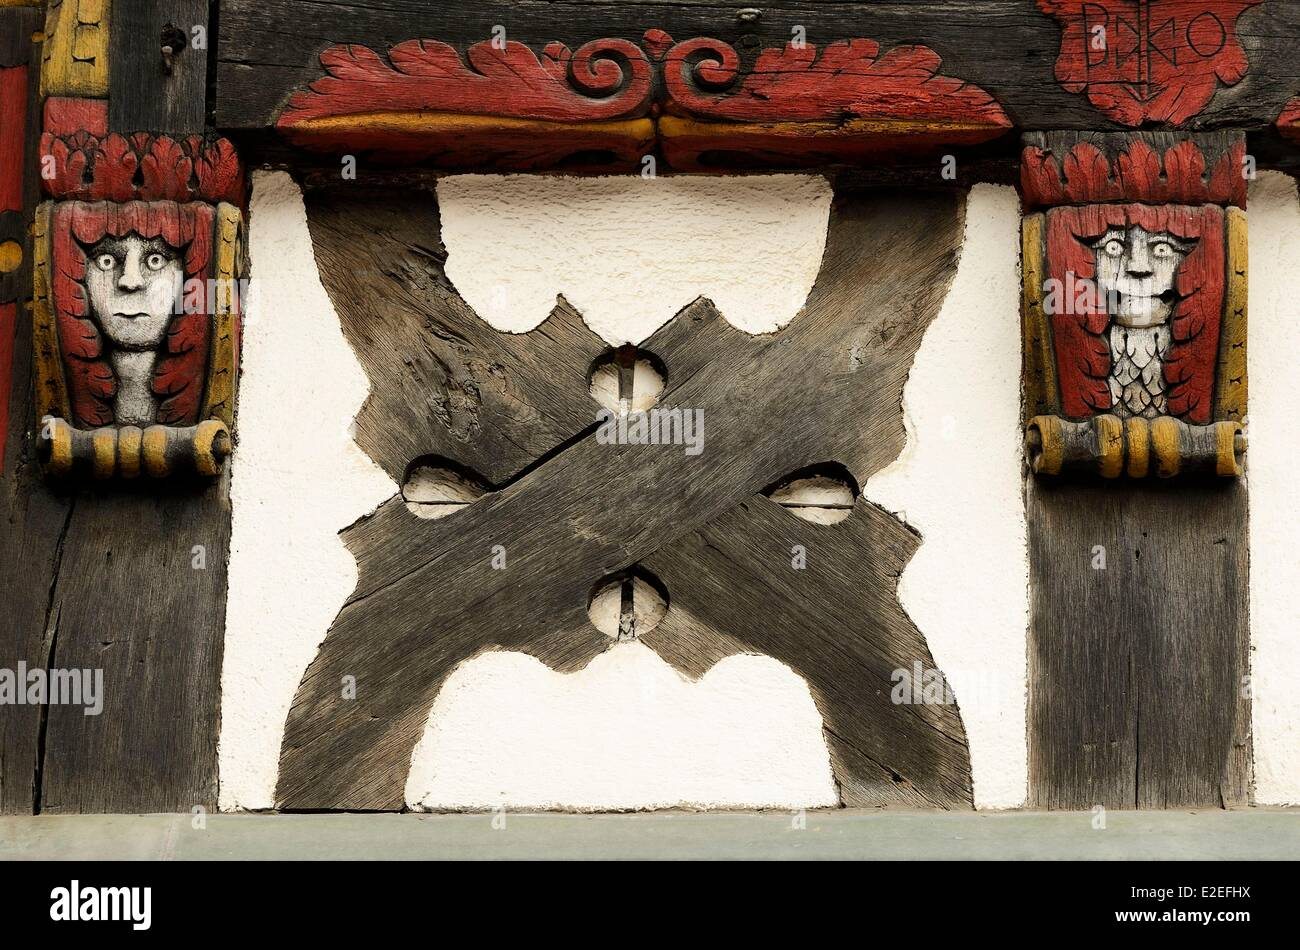 France, Haut Rhin, Kaysersberg, De Gaulle street, timbered houses, the house Brief, sculptures, personages - Stock Image